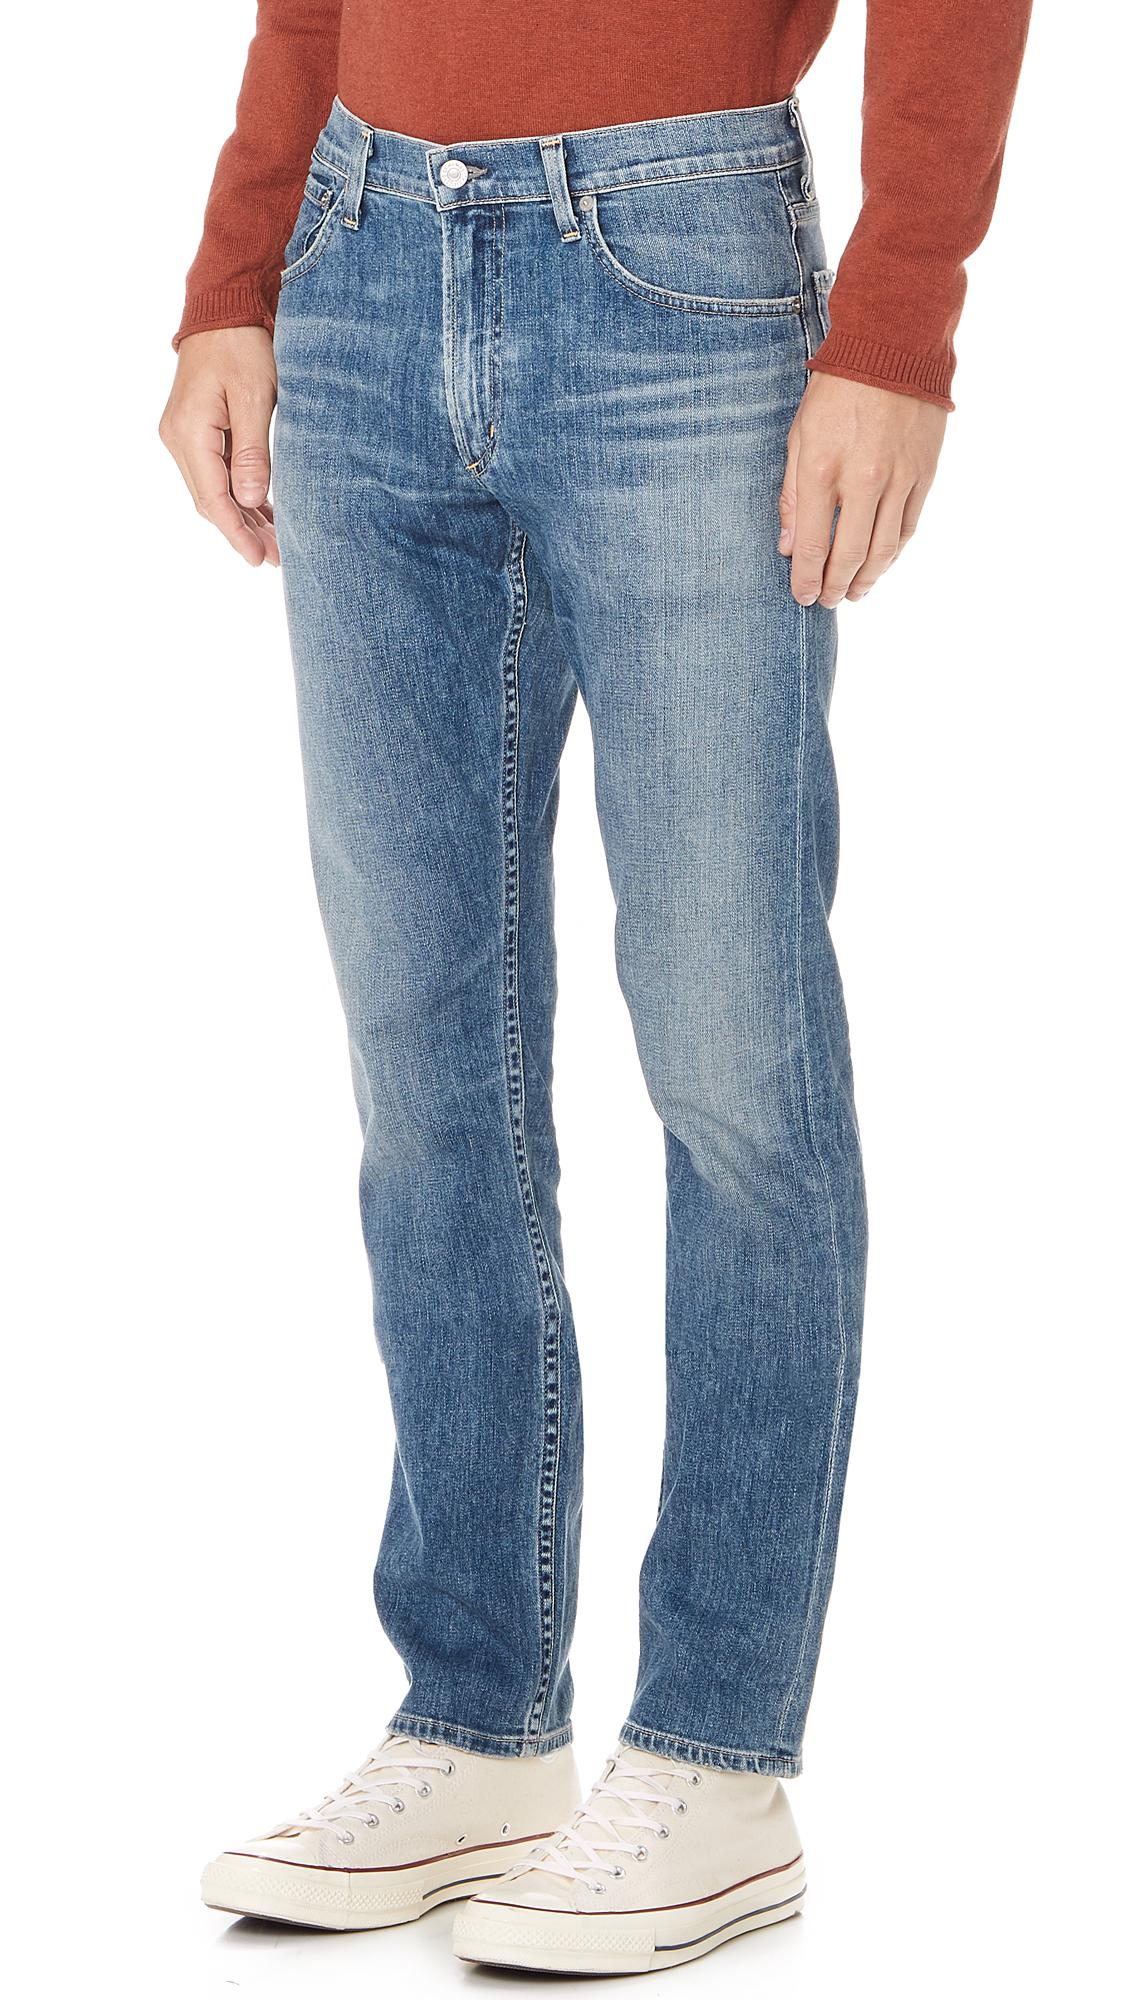 Citizens of Humanity Denim Bowery Standard Slim Jeans in Blue for Men